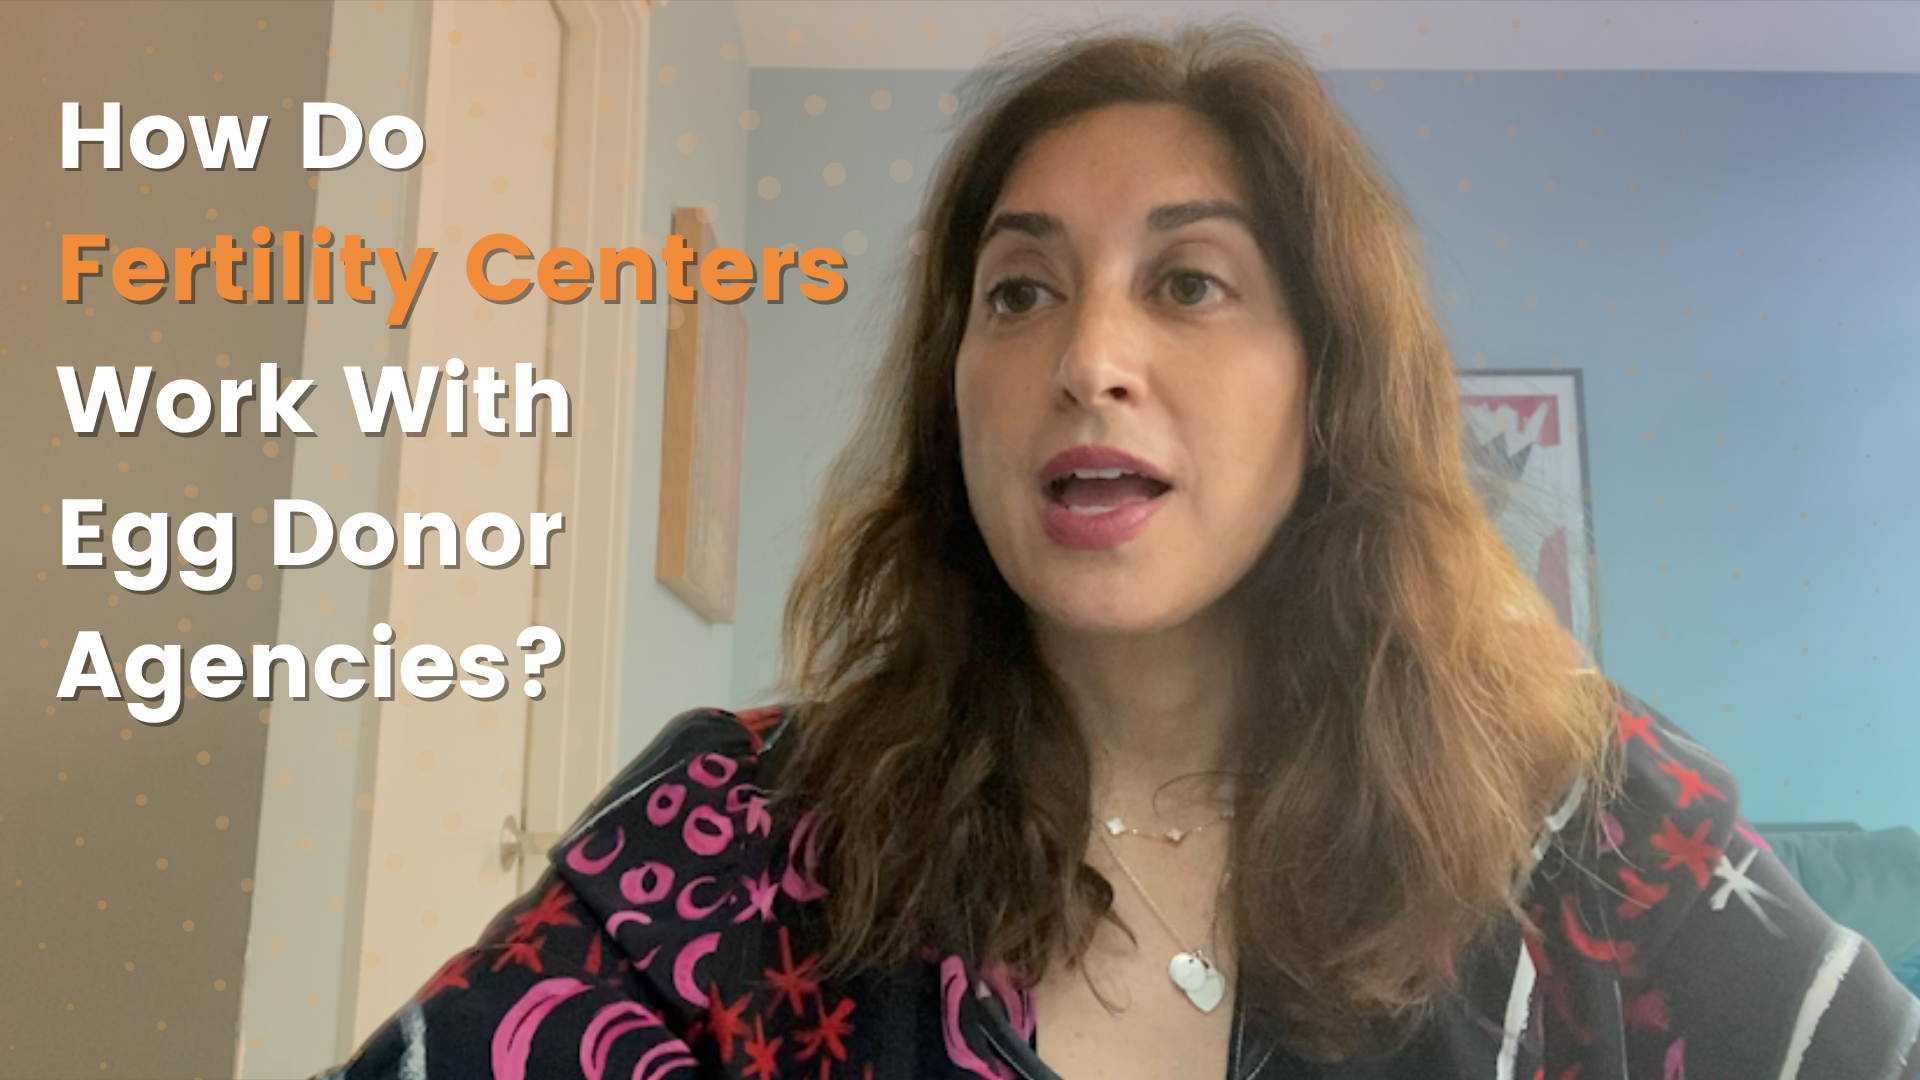 How do fertility centers and egg donor agencies work together